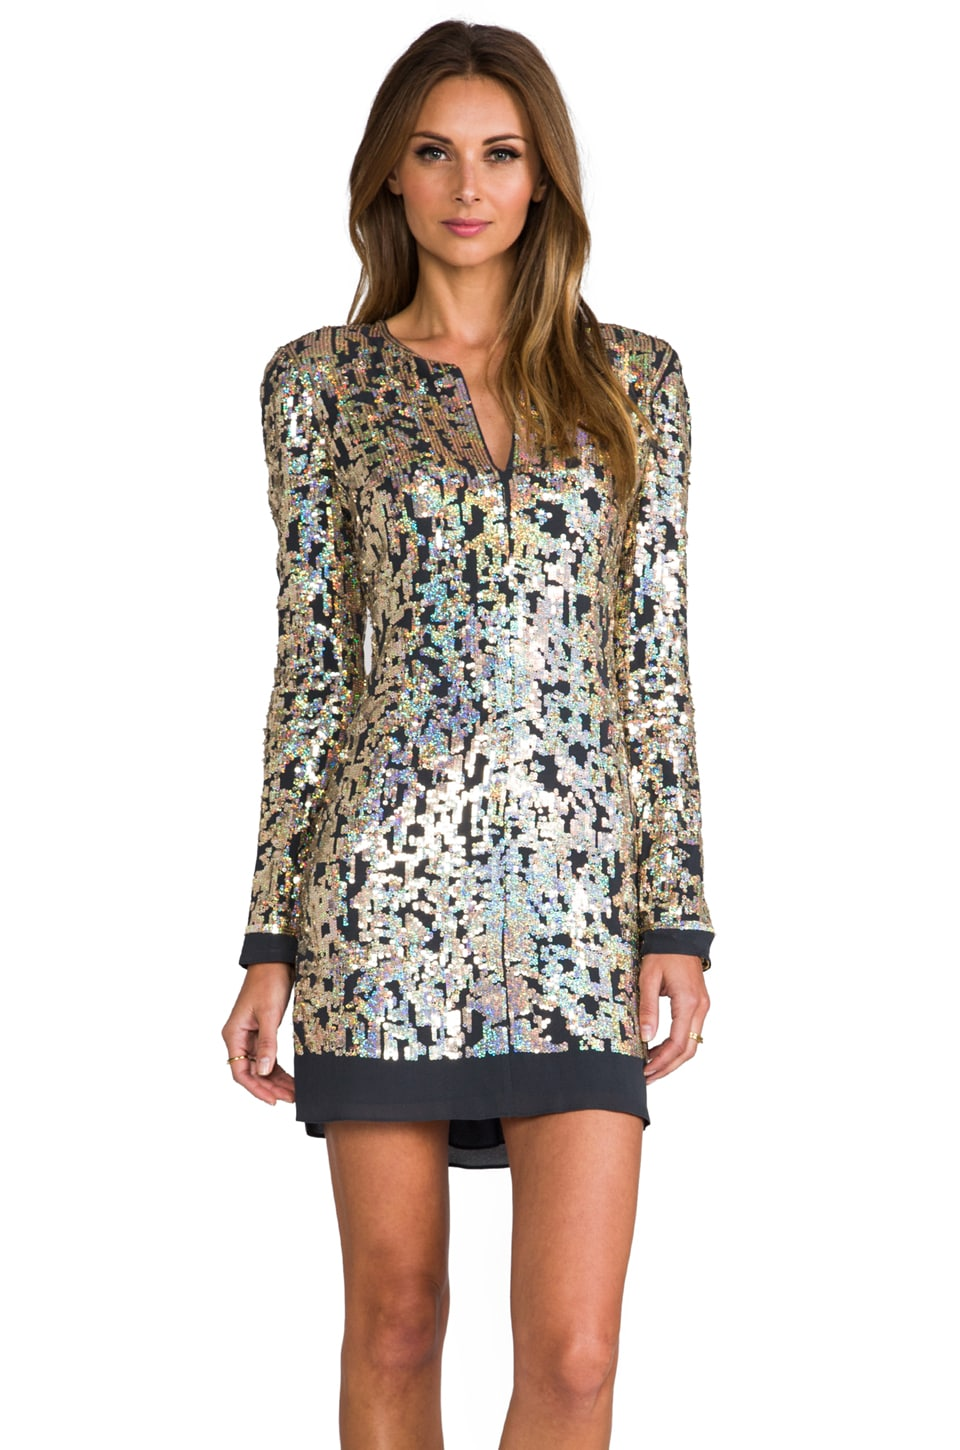 DEREK LAM 10 CROSBY Digital Sequins Long Sleeve Dress in Gold